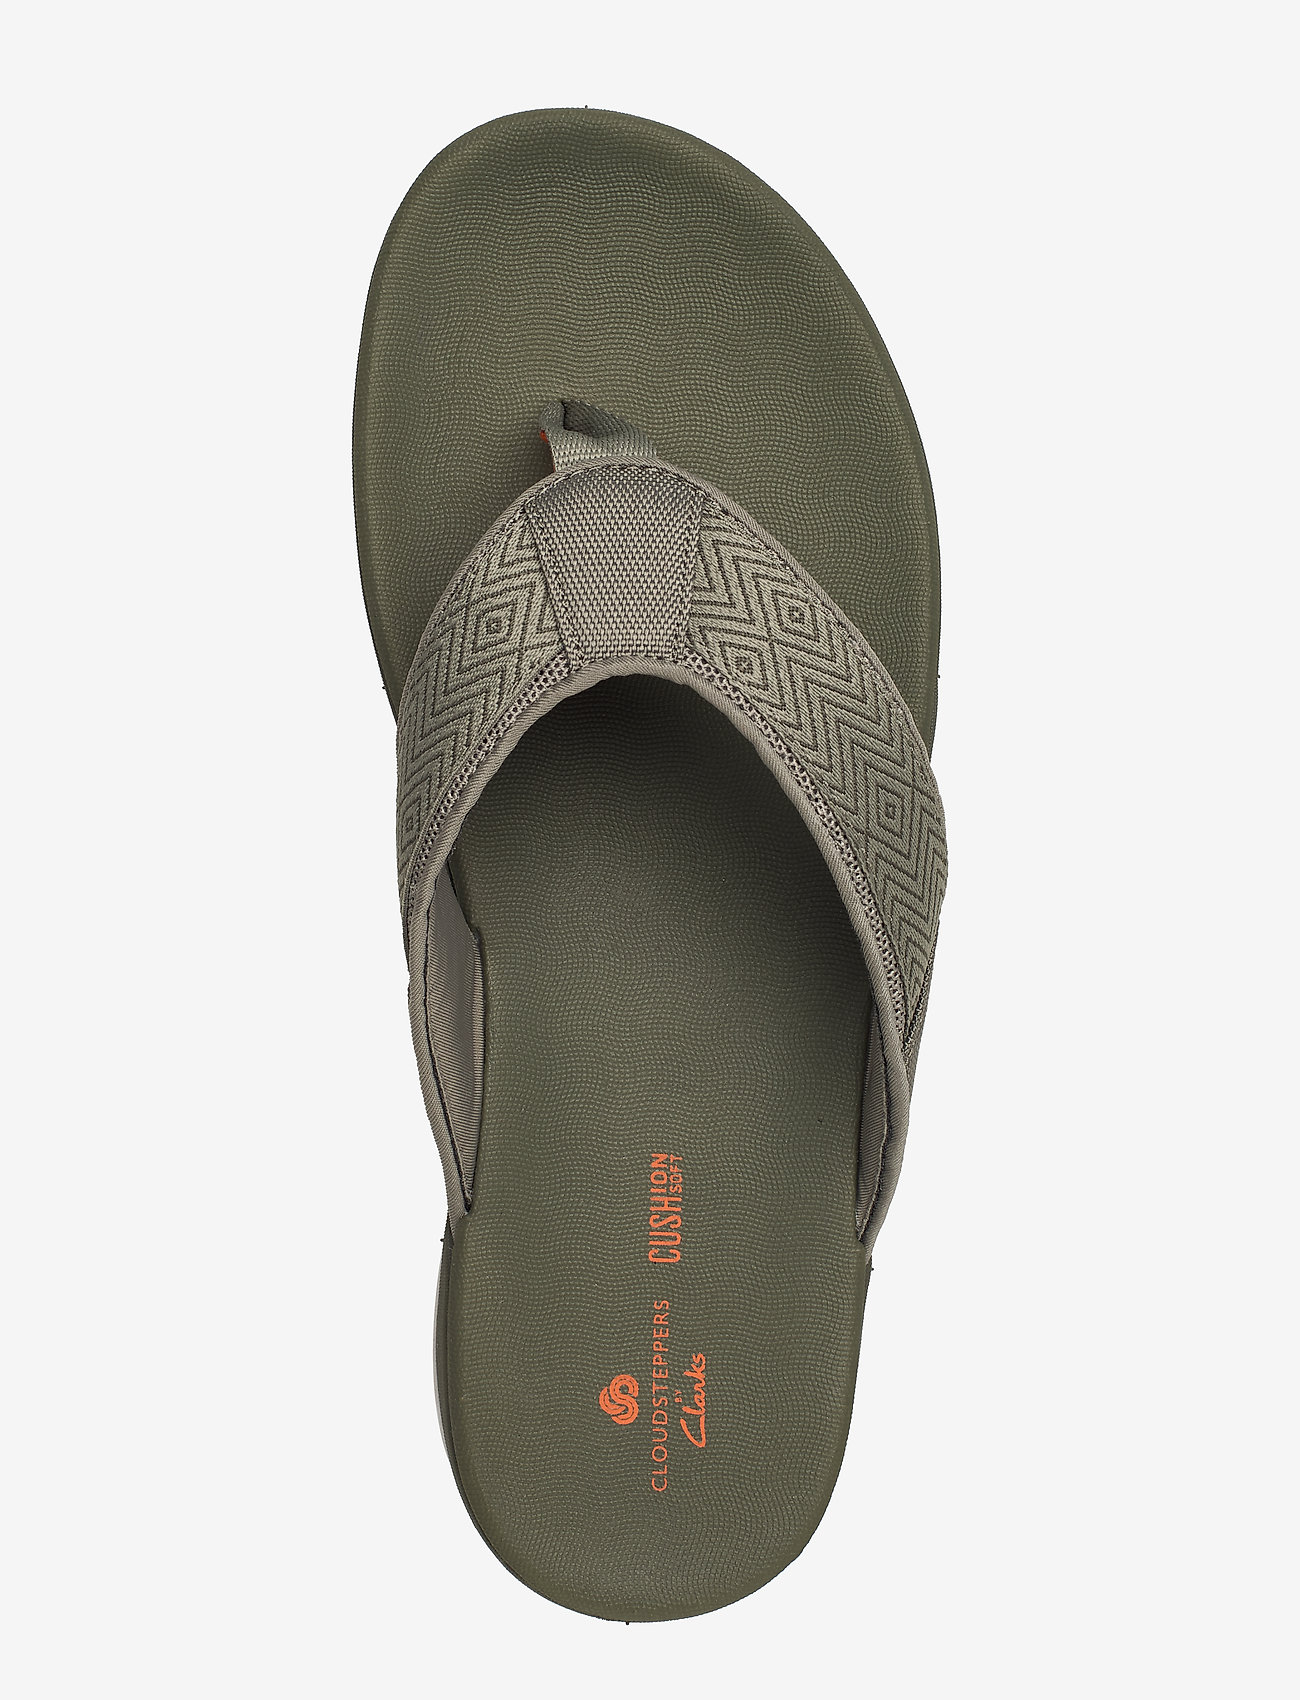 Step Beat Dune (Dusty Olive) - Clarks